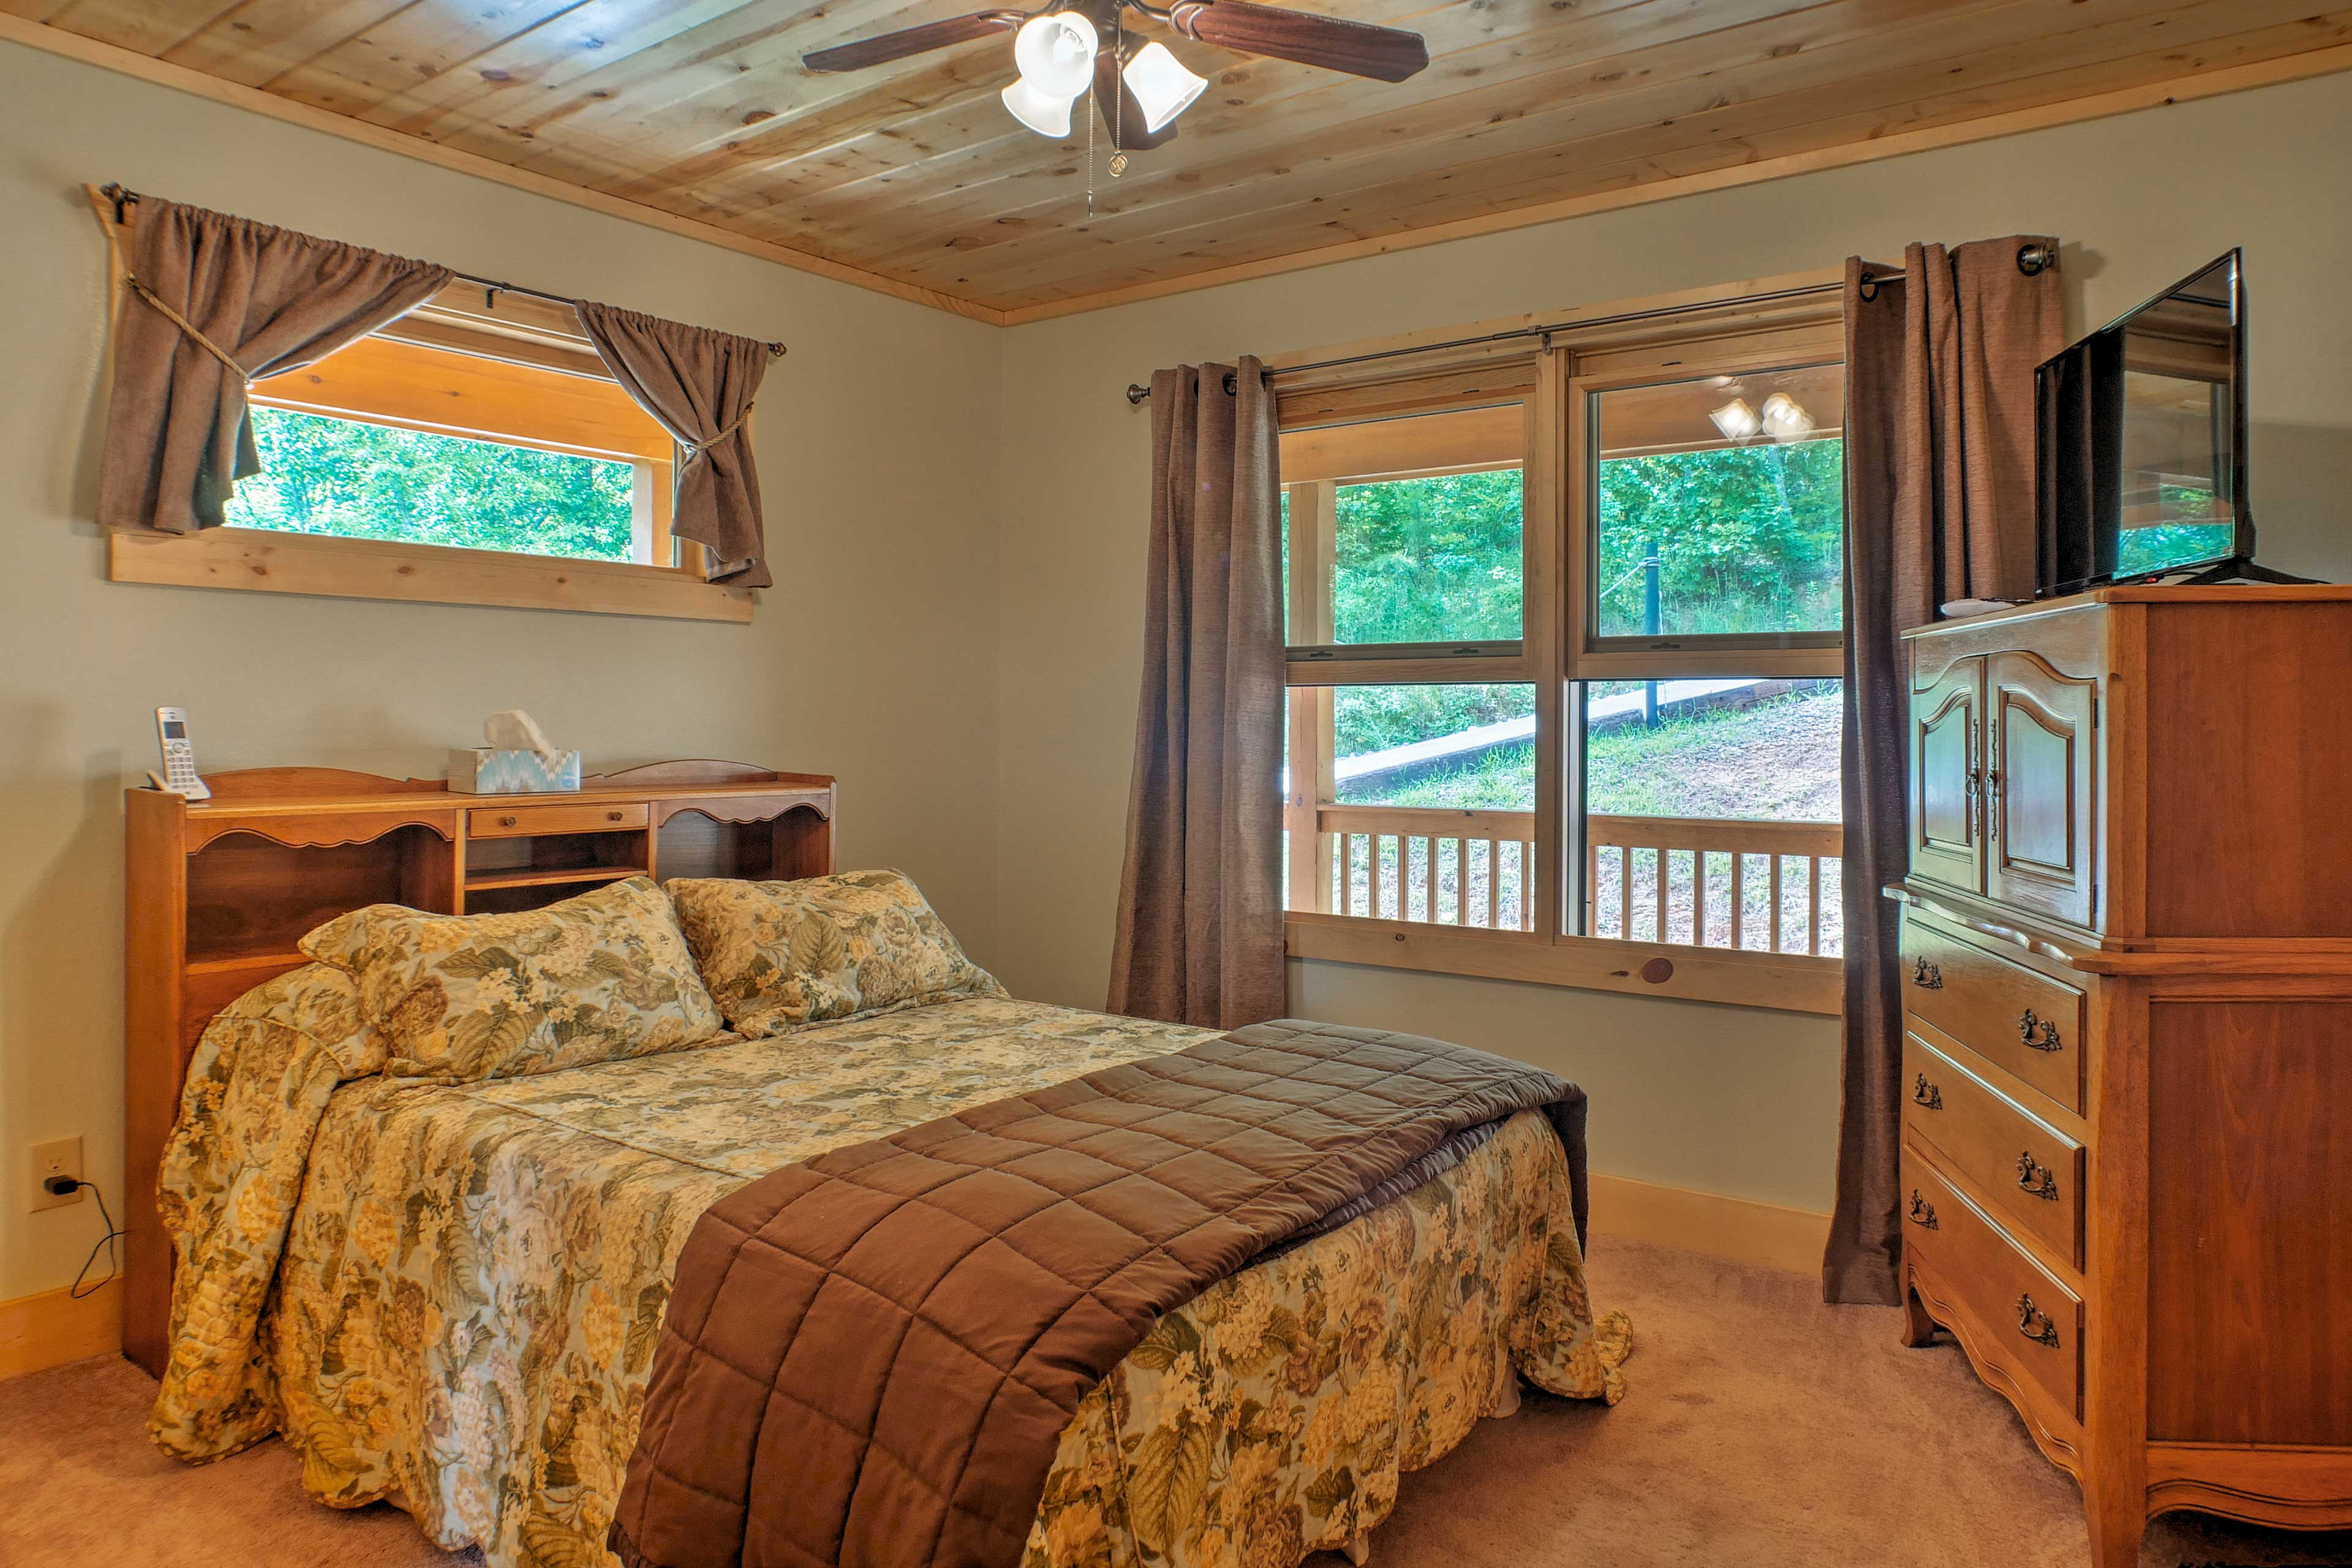 Retreat to one of 3 bedrooms for a peaceful slumber.